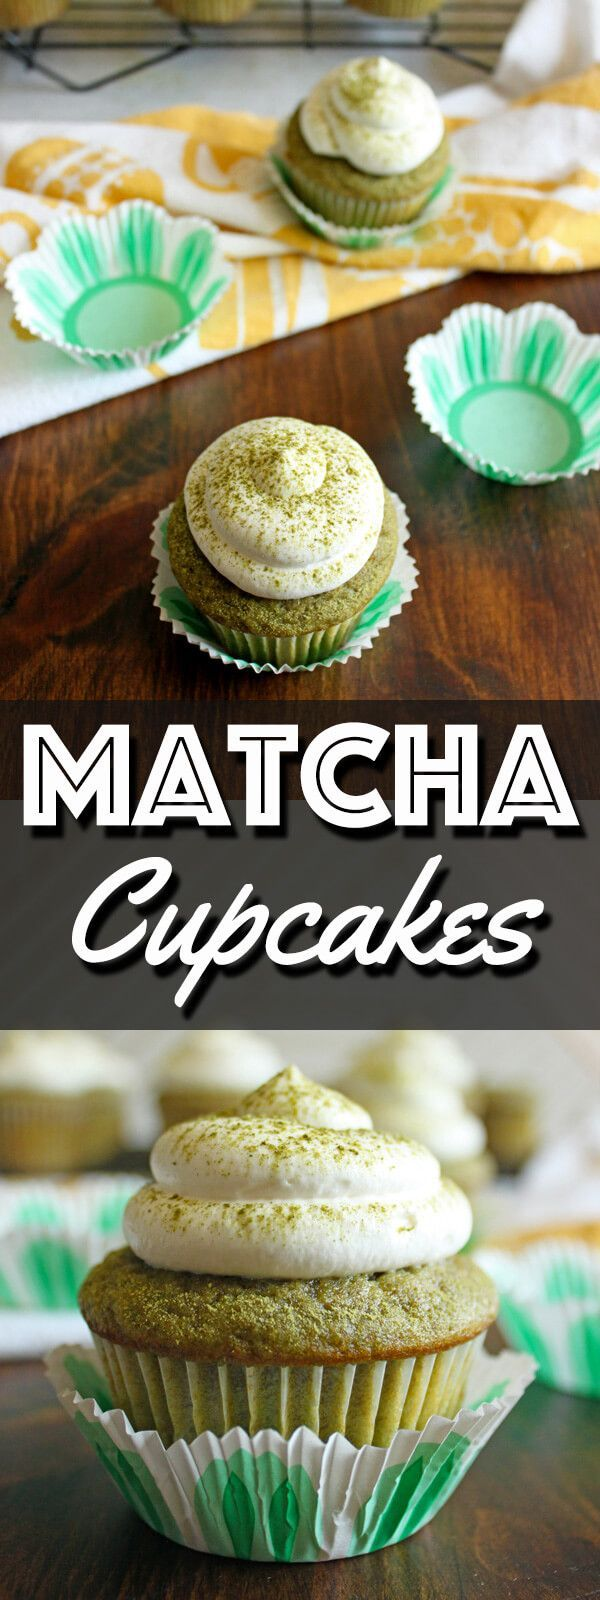 These delicate Matcha Green Tea Cupcakes are topped with light and fluffy whipped cream. They taste just like a Starbucks Matcha green tea Frappuccino! | wildwildwhisk.com #matcha #greentea #cupcakes